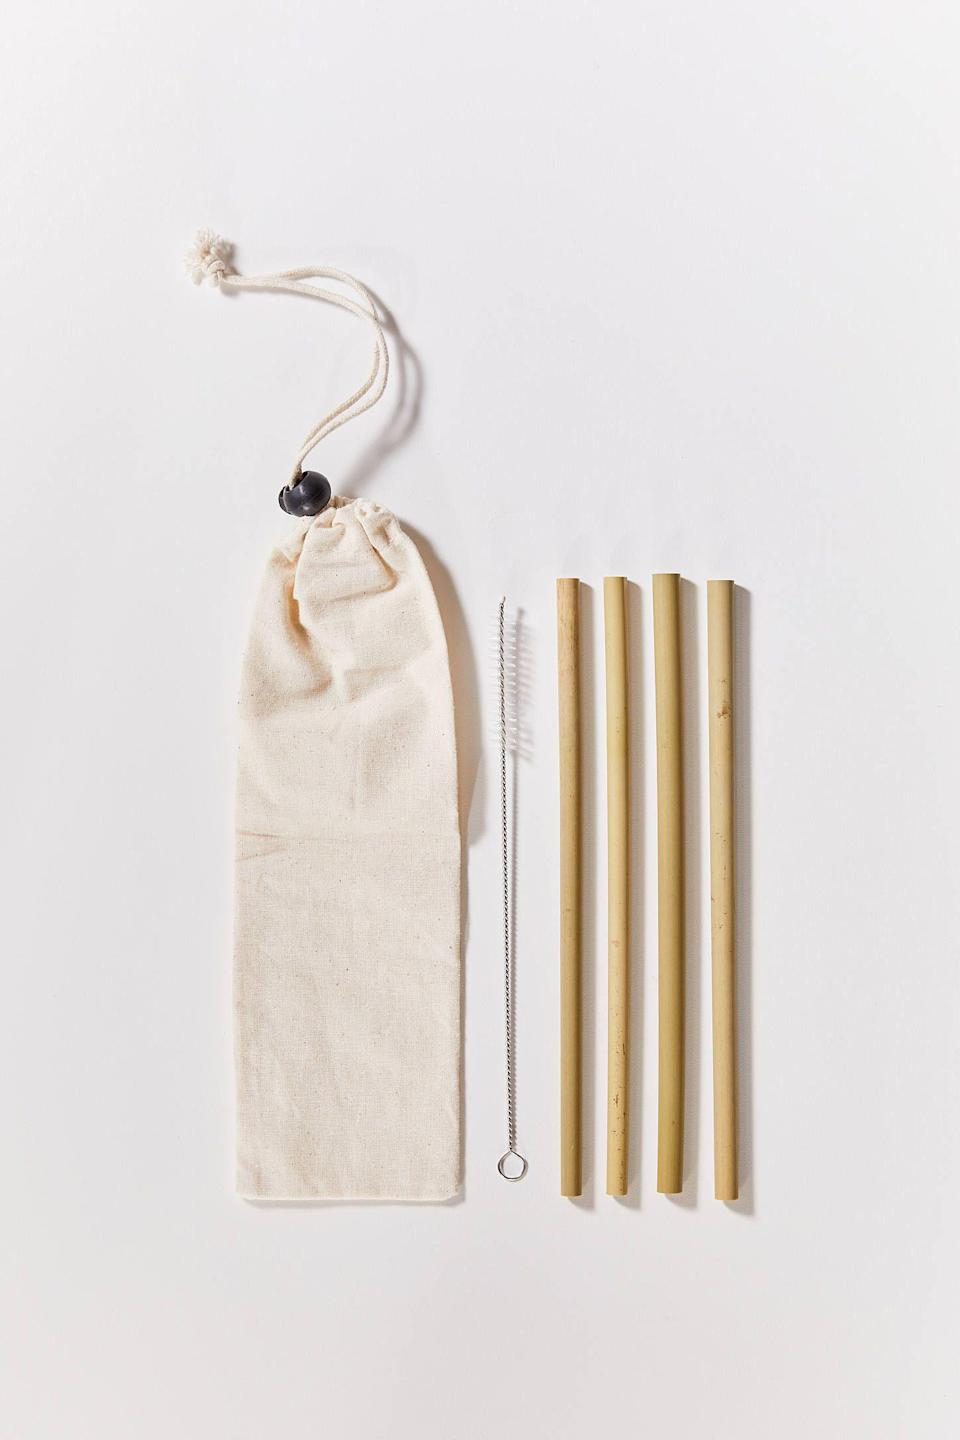 """<p><strong>Urban Outfitters</strong></p><p>urbanoutfitters.com</p><p><strong>$10.00</strong></p><p><a href=""""https://go.redirectingat.com?id=74968X1596630&url=https%3A%2F%2Fwww.urbanoutfitters.com%2Fshop%2Freusable-bamboo-straw-set&sref=https%3A%2F%2Fwww.countryliving.com%2Fshopping%2Fgifts%2Fg24700158%2Fbest-kitchen-gifts%2F"""" rel=""""nofollow noopener"""" target=""""_blank"""" data-ylk=""""slk:Shop Now"""" class=""""link rapid-noclick-resp"""">Shop Now</a></p><p>This is the ideal gift for the drink lover in your crowd who also loves the environment. Made from renewable bamboo, these reusable straws come with a cleaning brush and handy carrying pouch.</p>"""